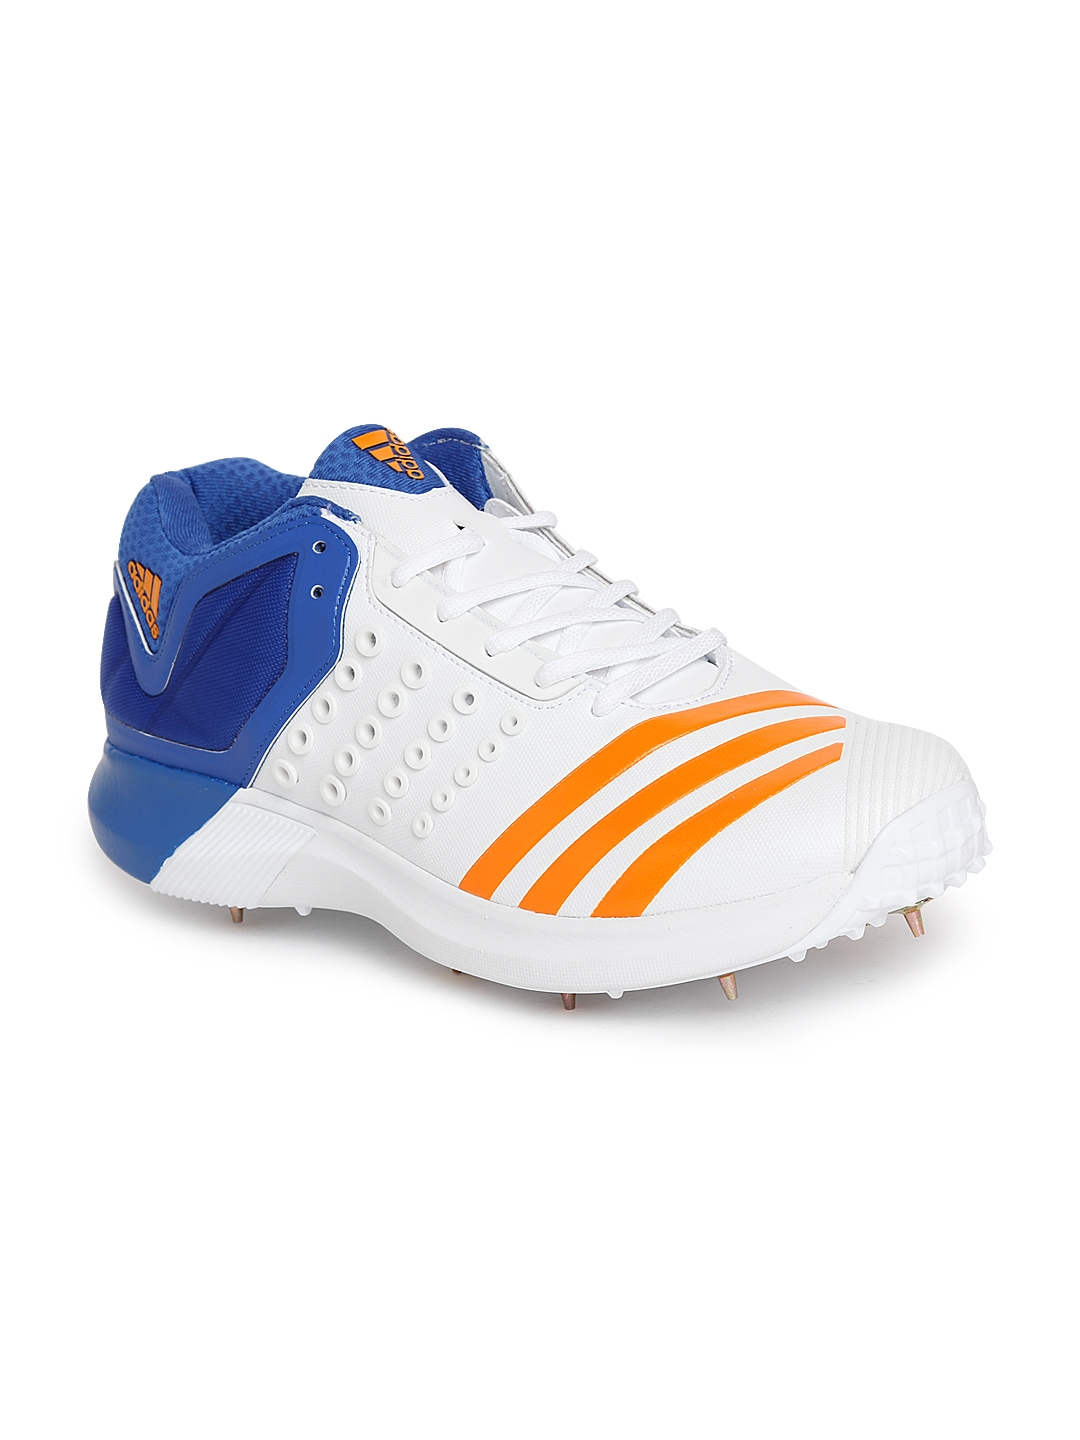 2ddcf518755 Buy ADIDAS Men White Adipower Vector Mid Cricket Shoes - Sports ...